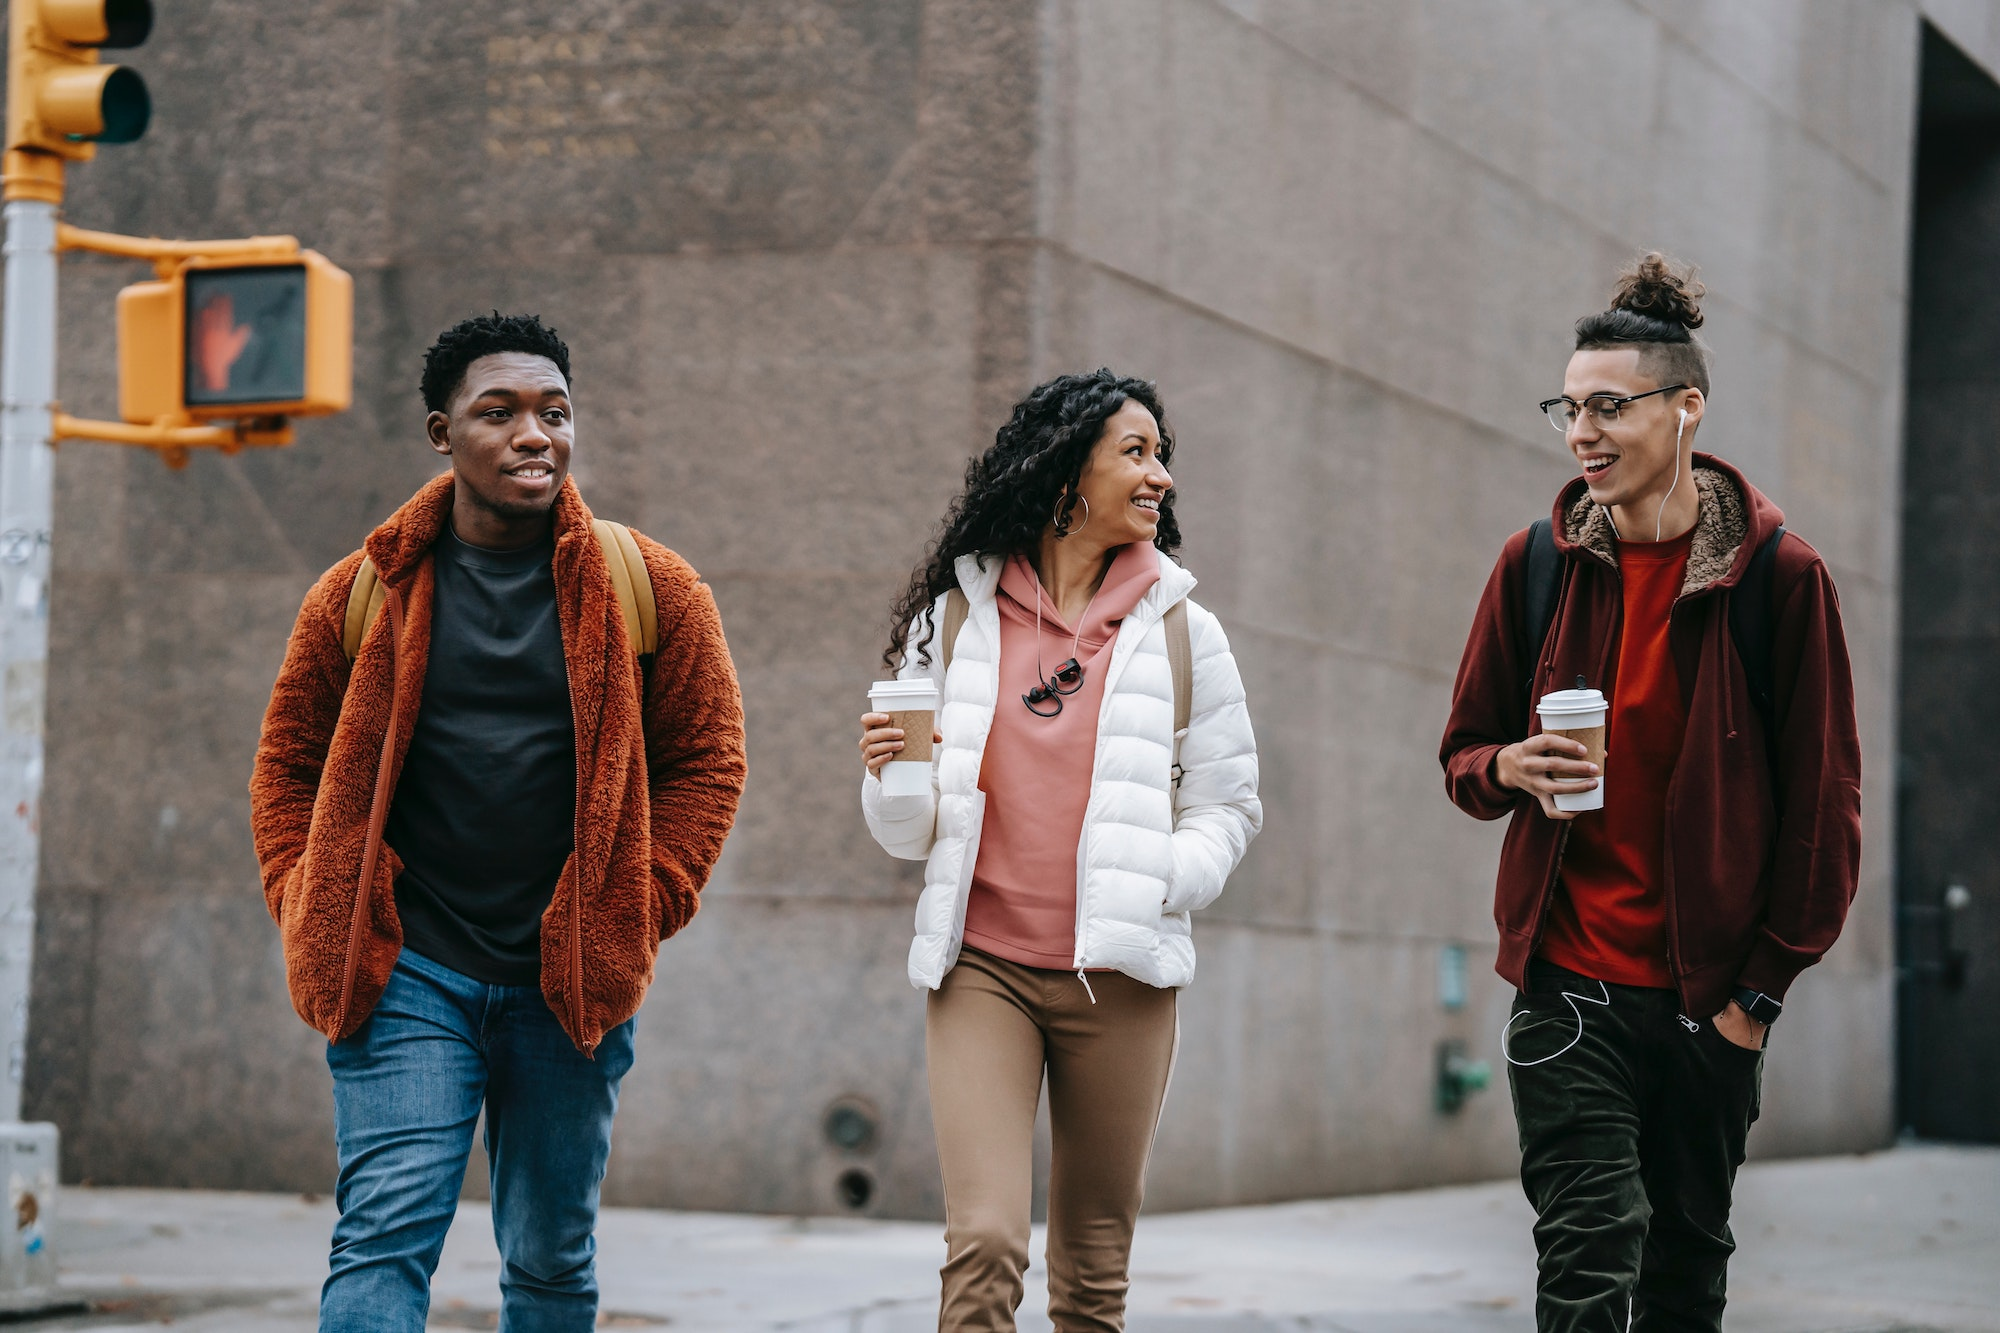 Giving awkward teenagers enough attention can be one way teachers can build trusting relationships with their students